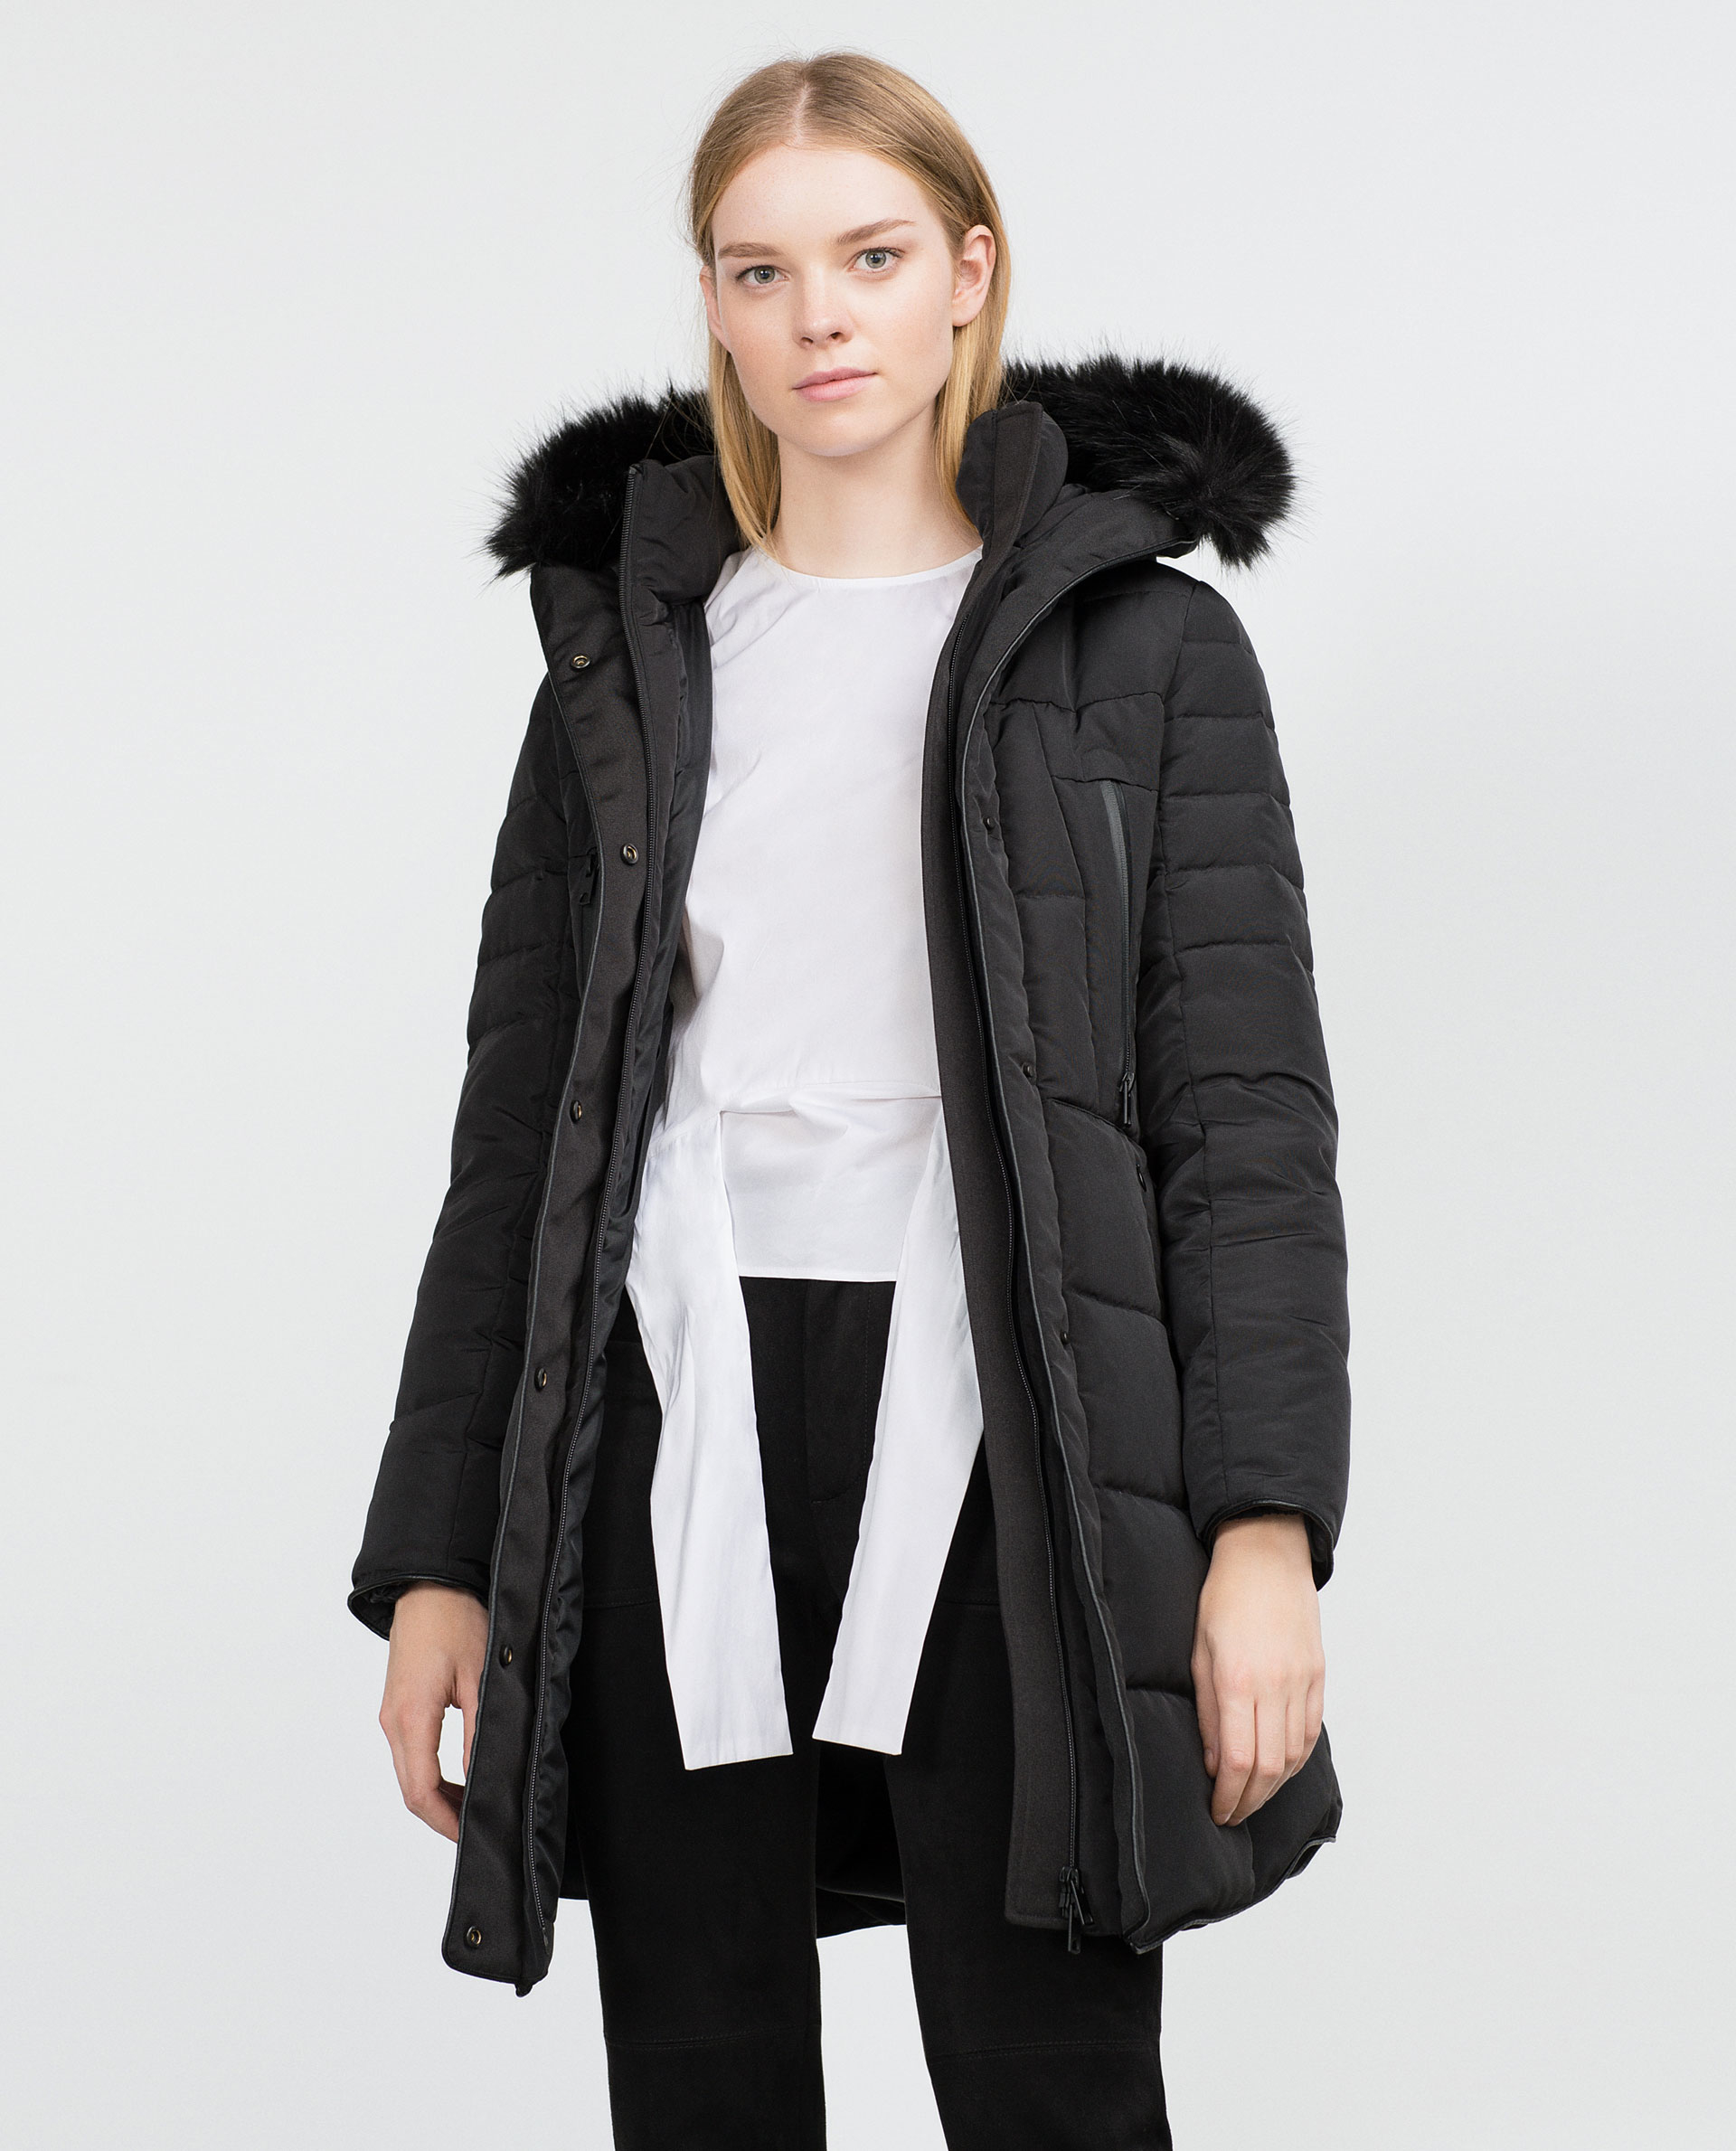 Black Quilted Coats For Women - JacketIn : quilted coat with hood - Adamdwight.com